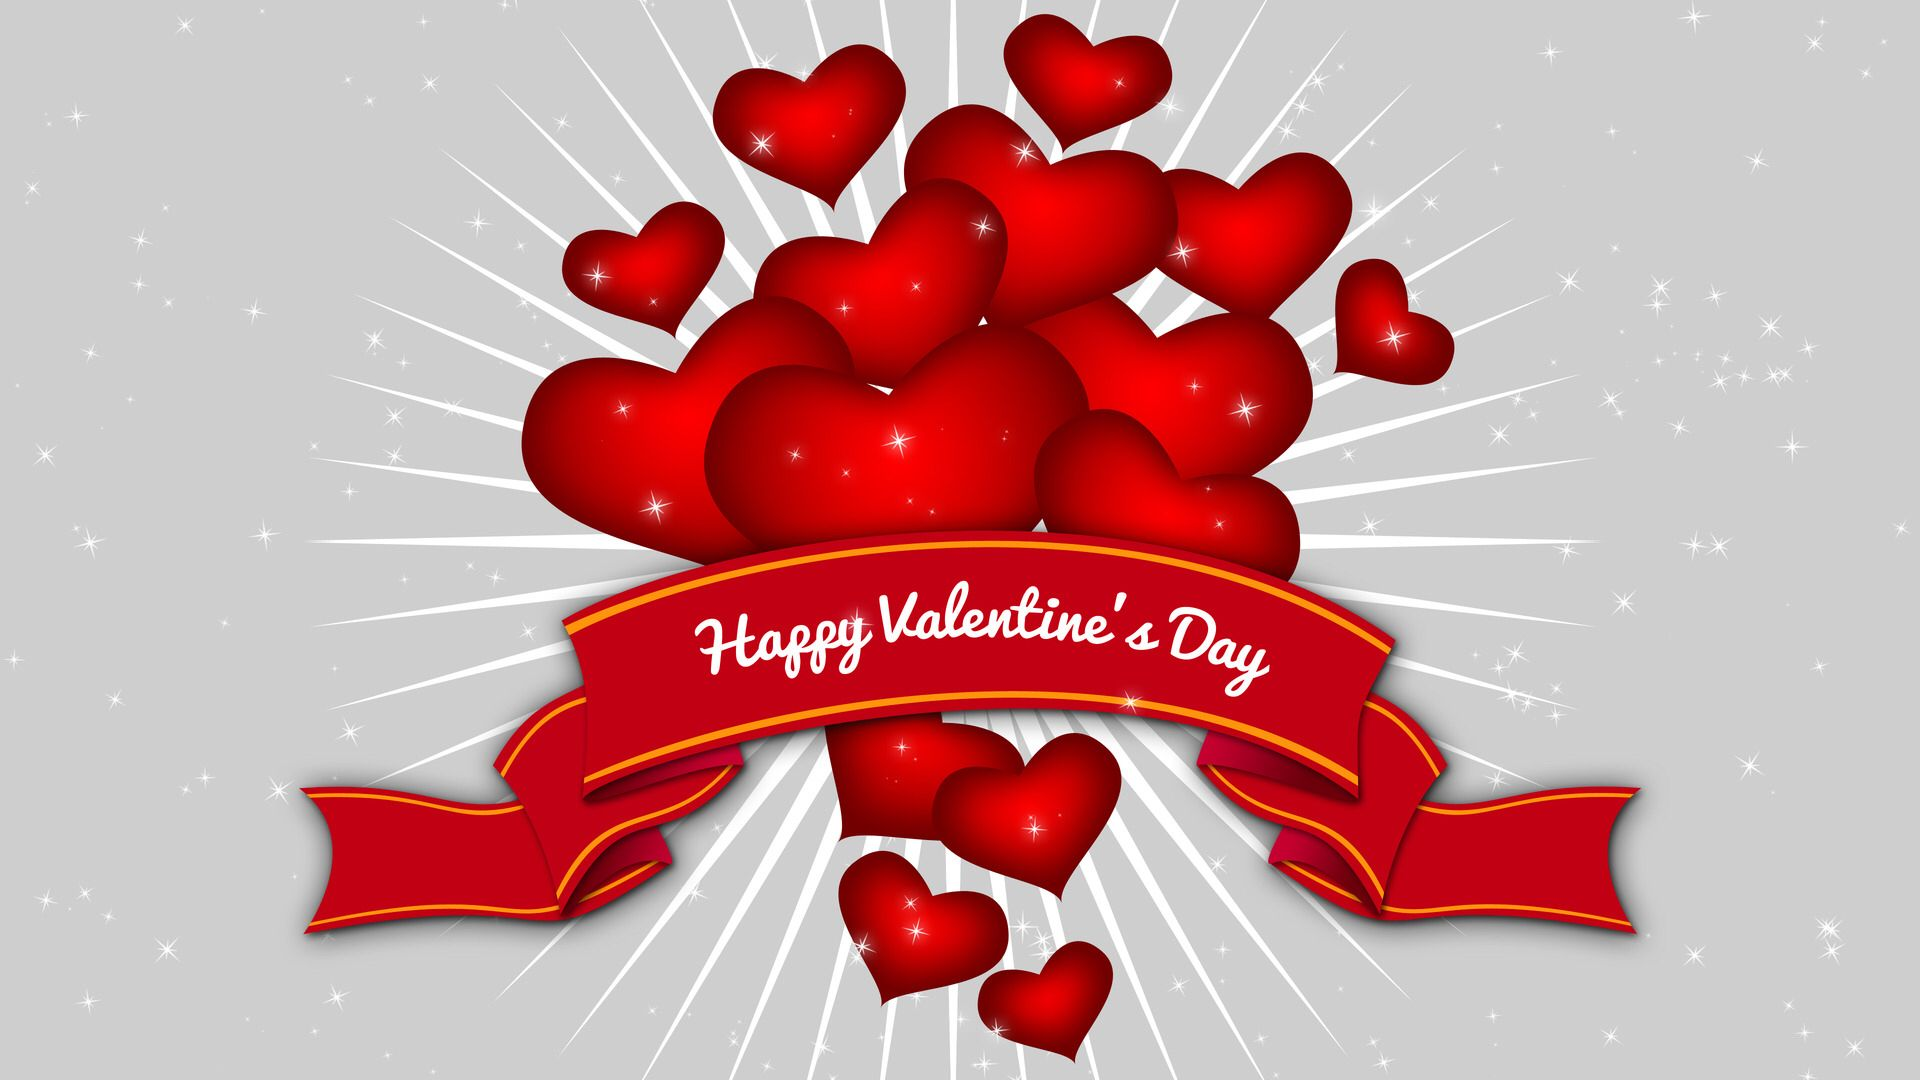 Happy Valentines Day And More Image From Wallpaperssfree Wp Content Uploads